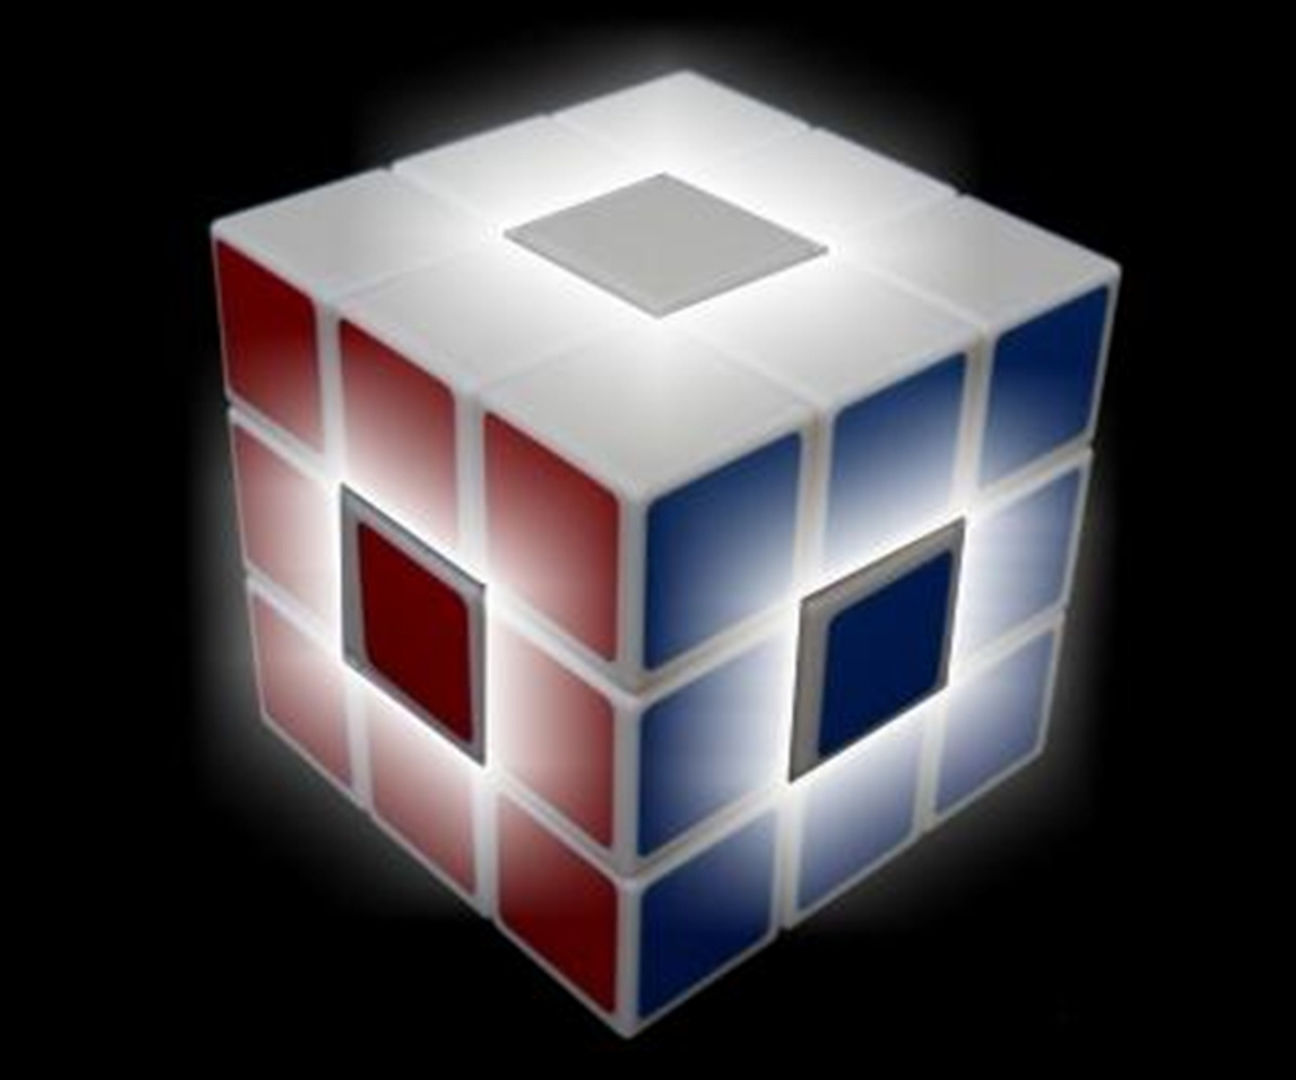 Solving Rubik's Cube Made Easy - Learn With Bhushan